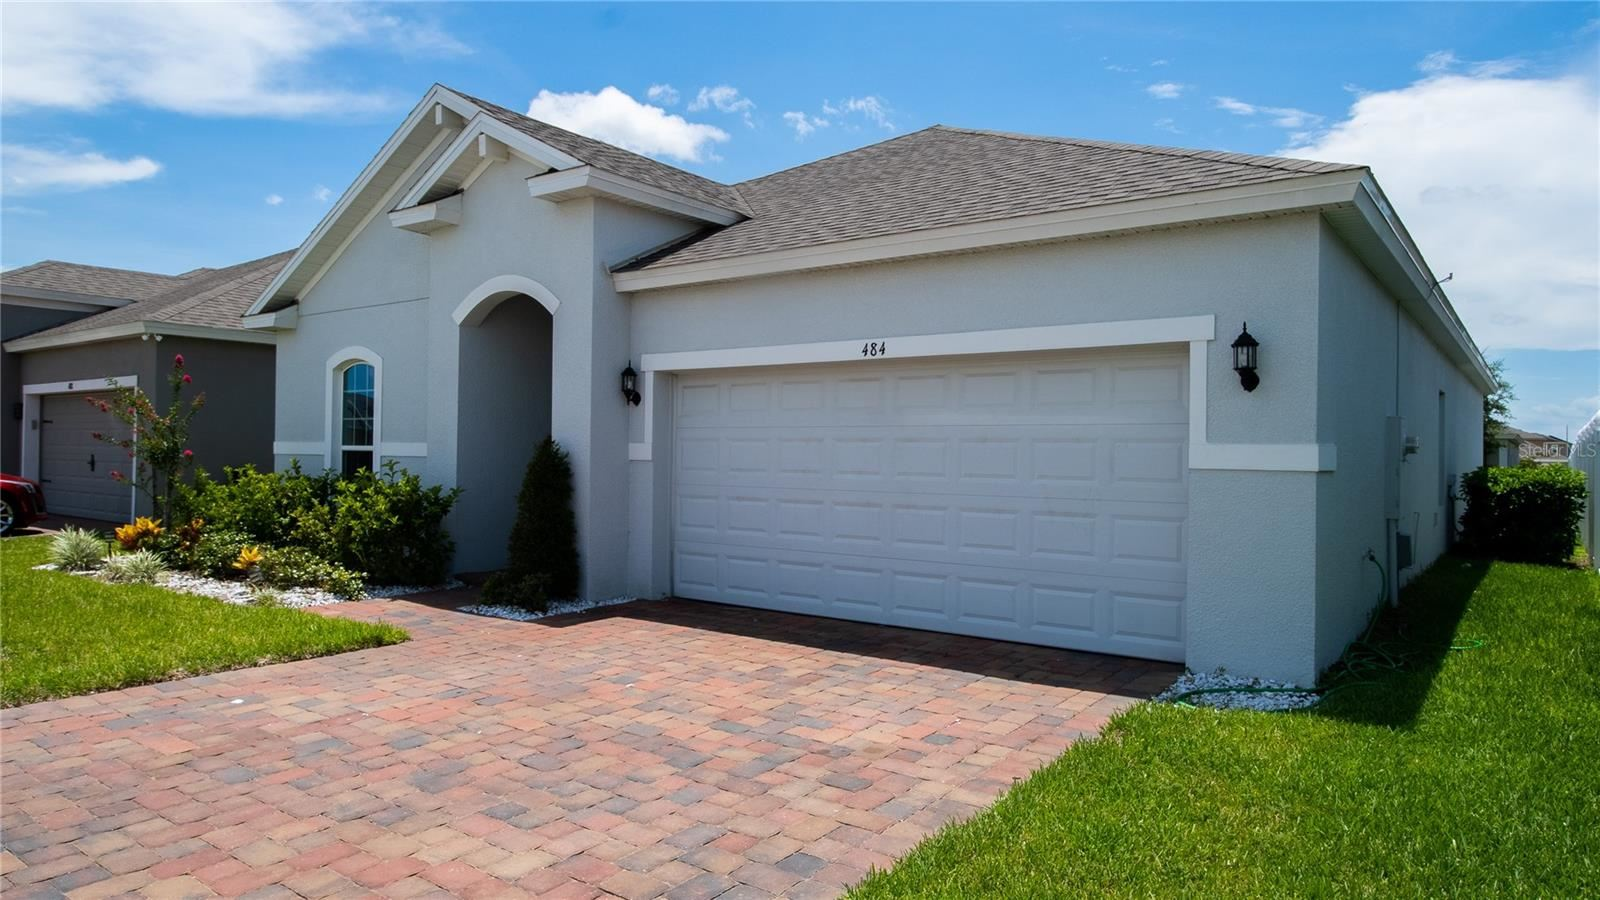 484 MEADOW POINTE DRIVE, Haines City, FL 33844 - #: S5053987